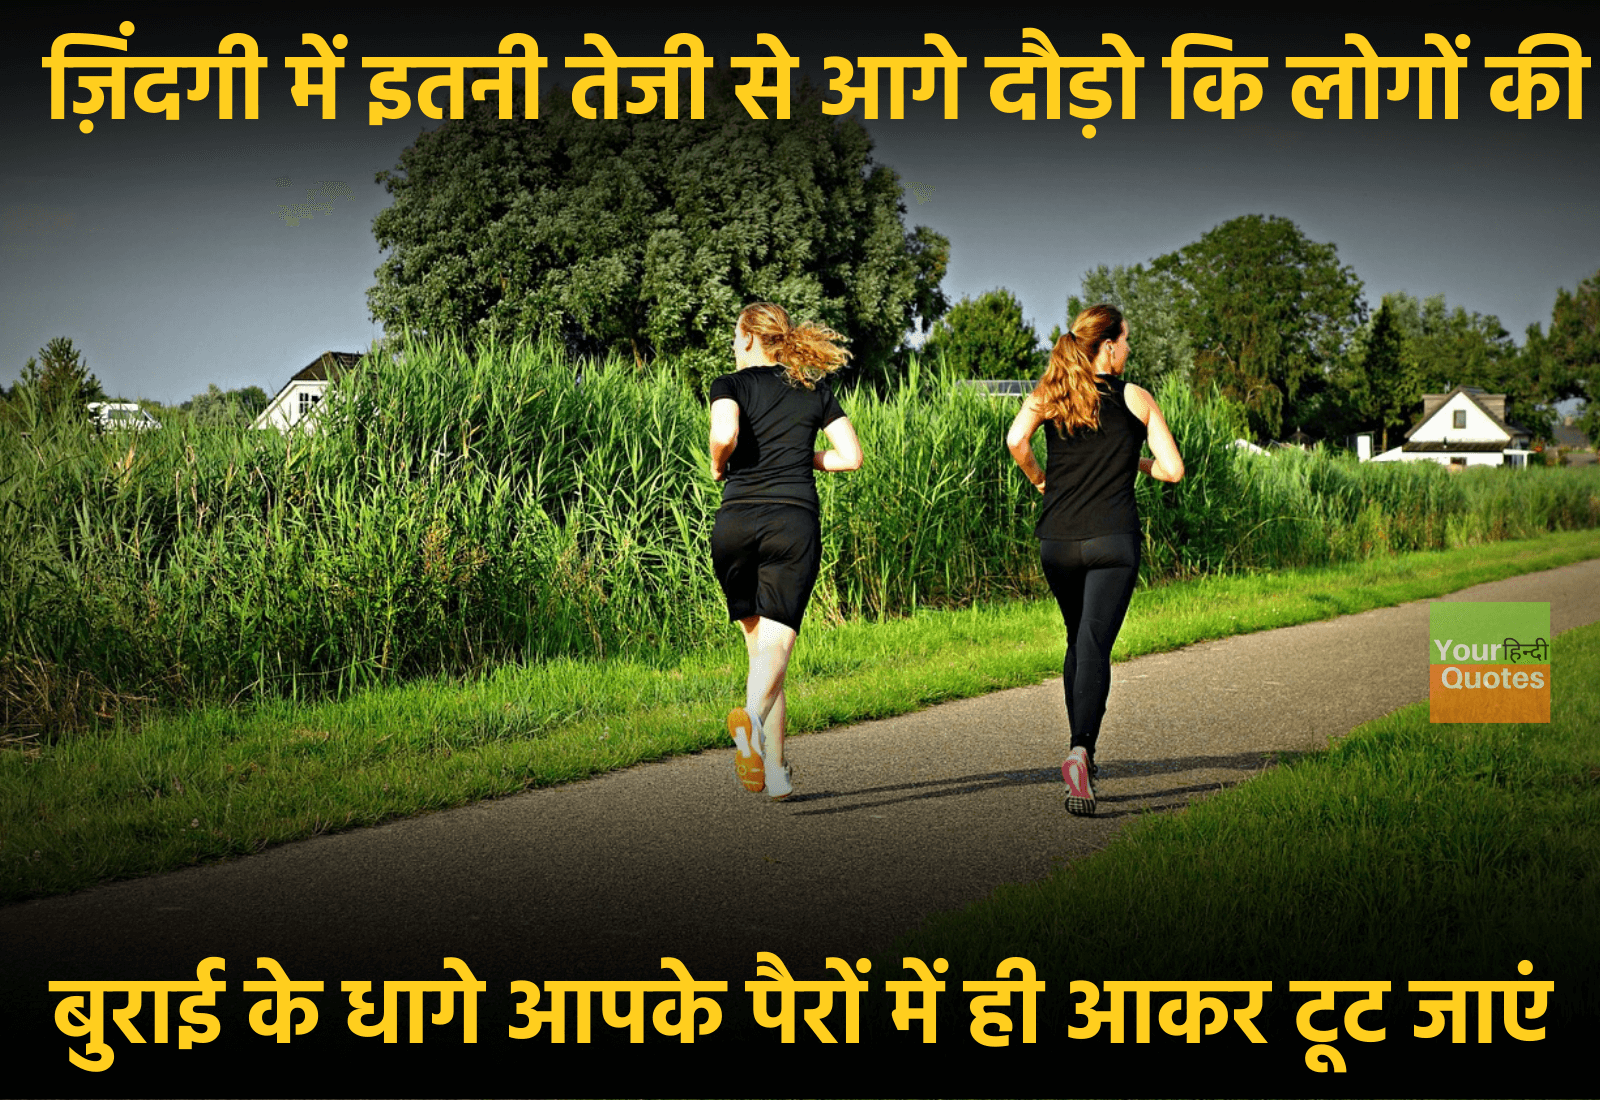 Motivational Quotes Hindi Images7